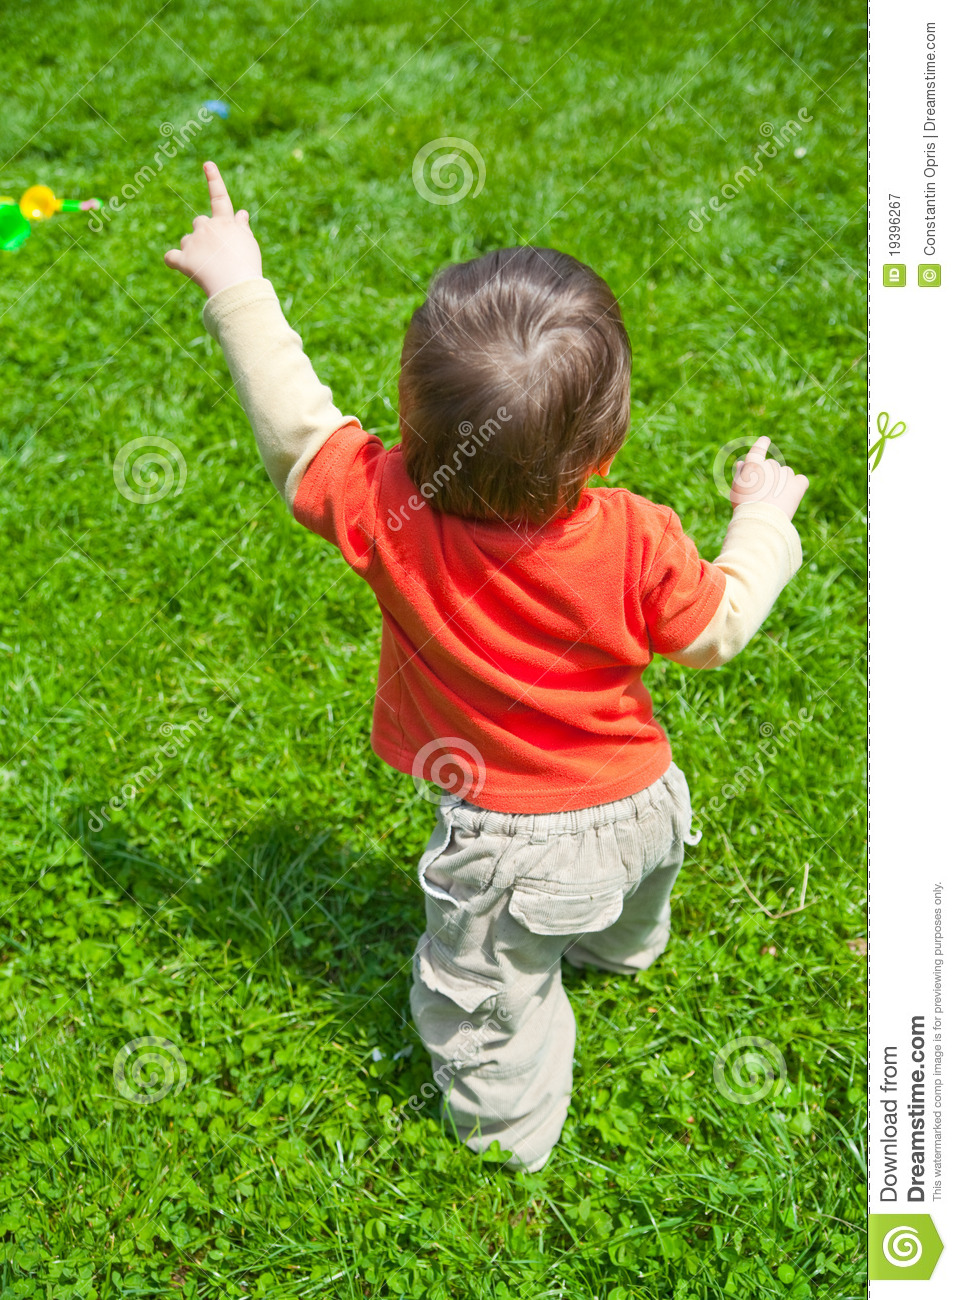 Baby Walking In Grass Royalty Free Stock Photography